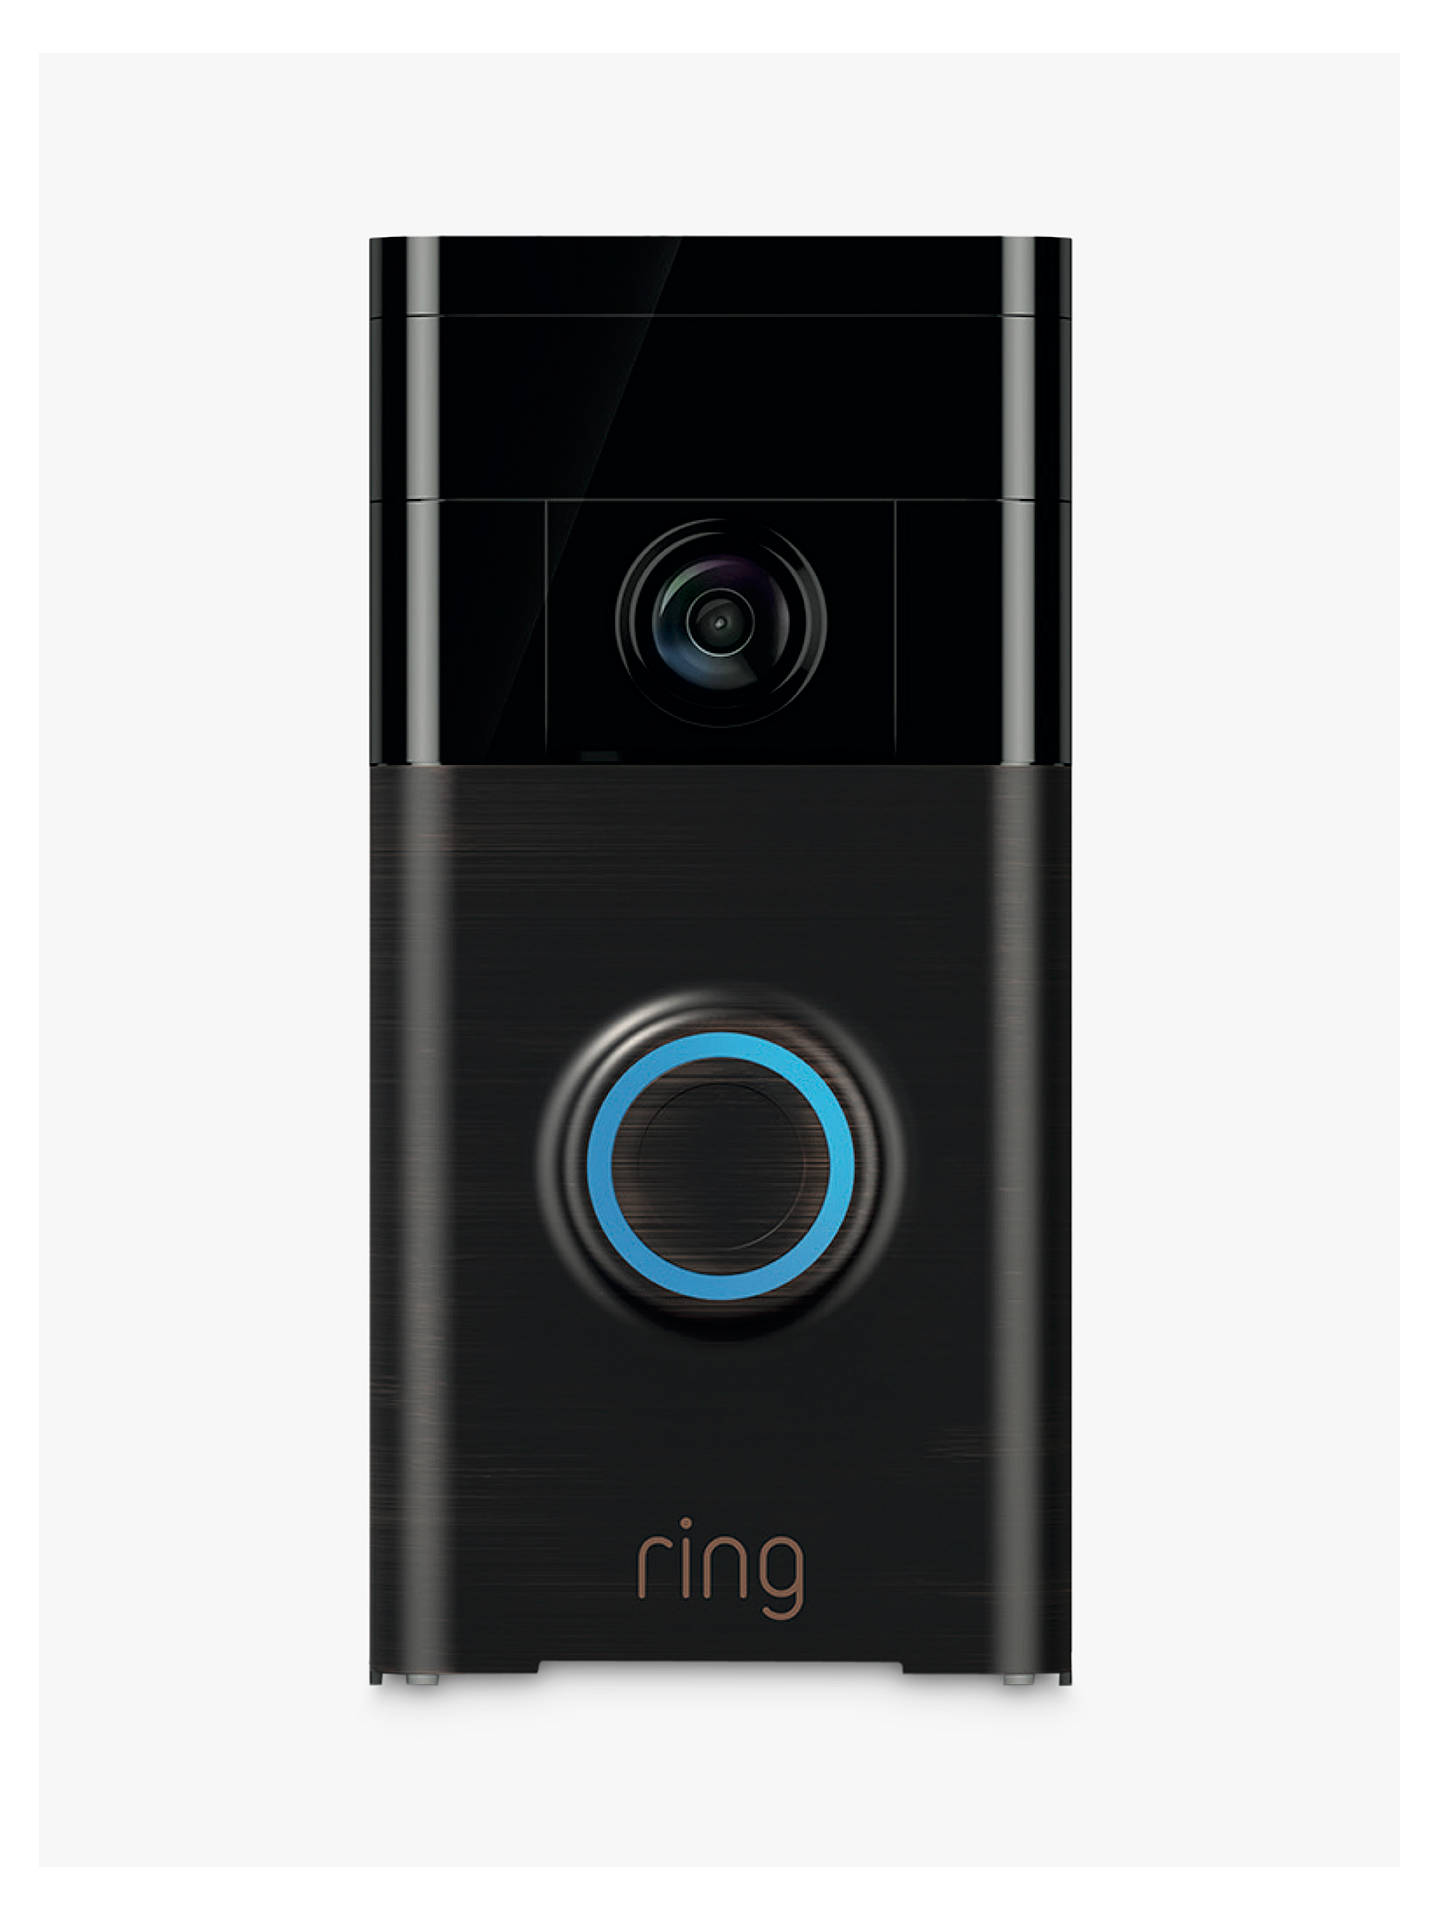 Ring Smart Video Doorbell With Built In Wi Fi Camera At John Lewis Mk Wiring Devices Qatar Buyring Venetian Bronze